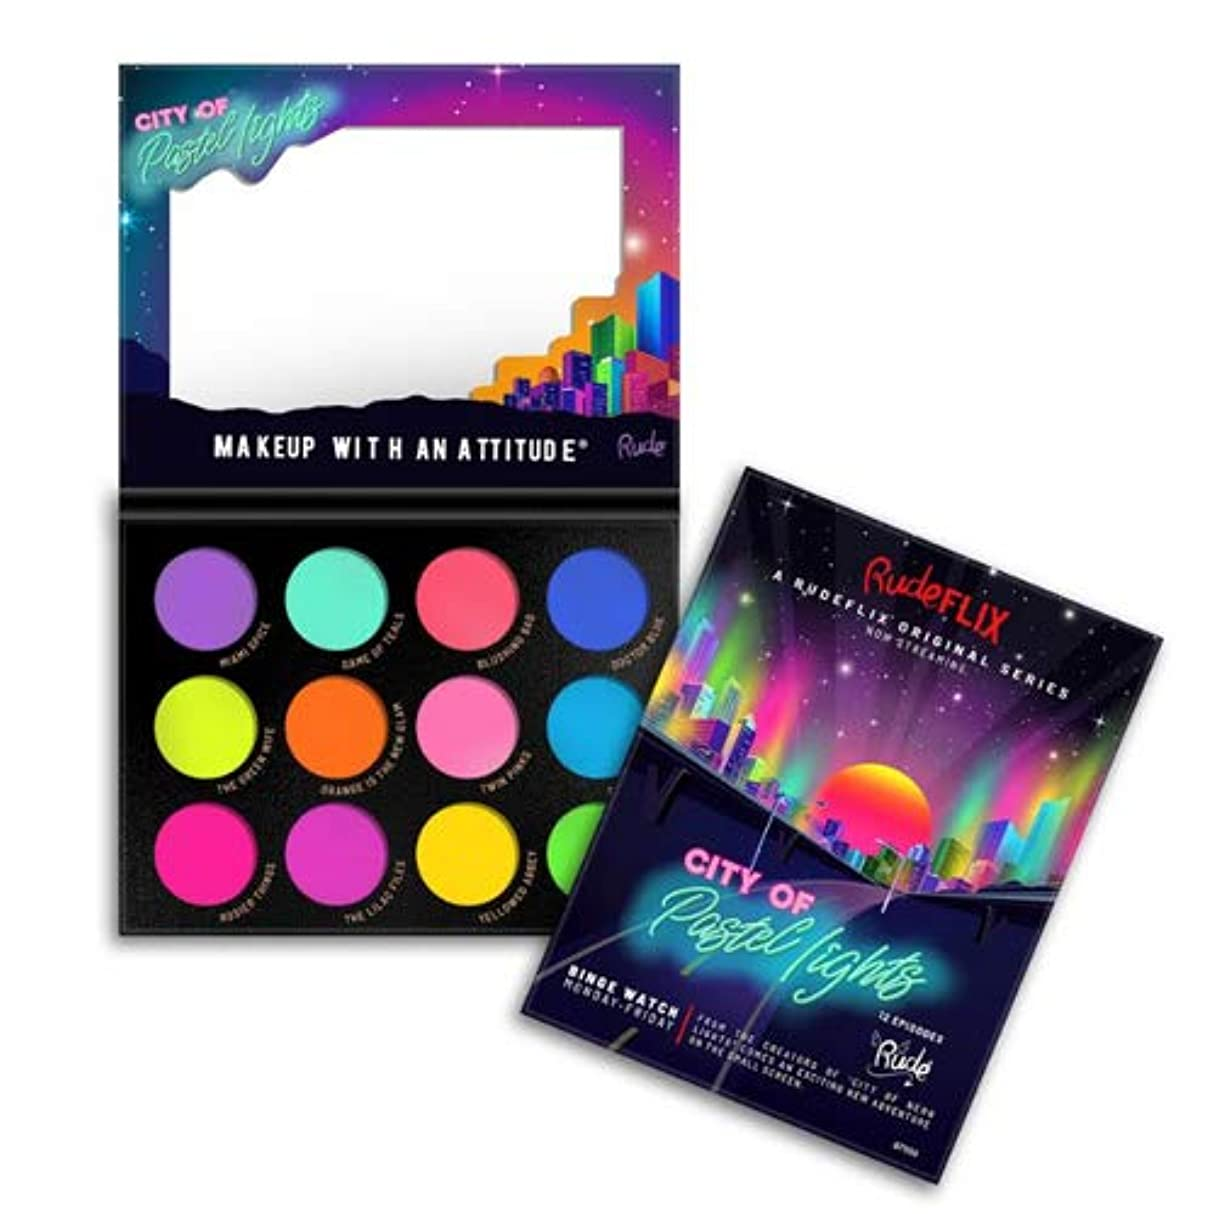 真夜中茎中央値RUDE City of Pastel Lights - 12 Pastel Pigment & Eyeshadow Palette (3 Pack) (並行輸入品)